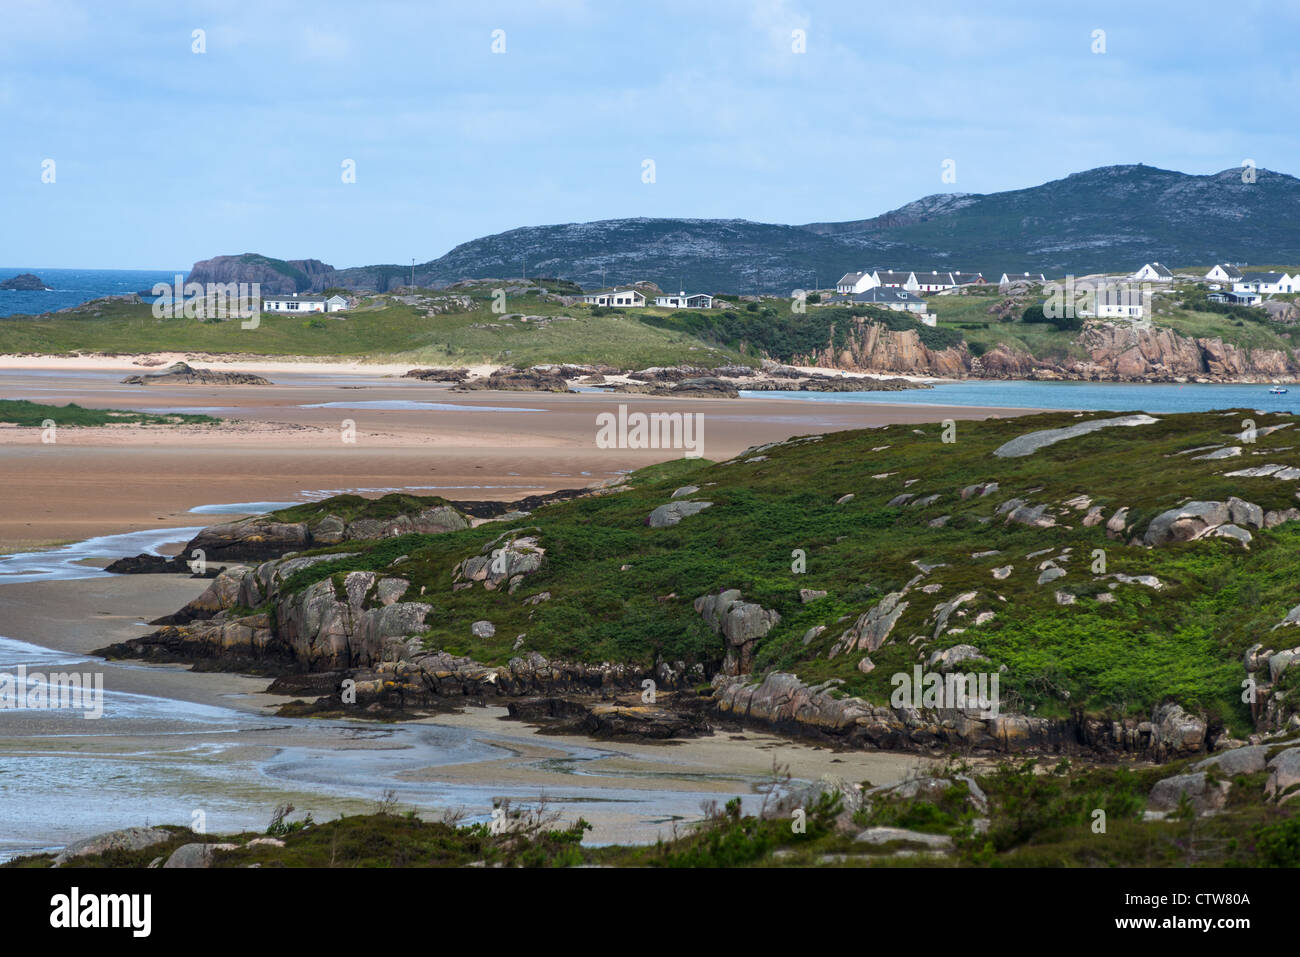 The Rosses Bay, County Donegal, Republic of Ireland. - Stock Image